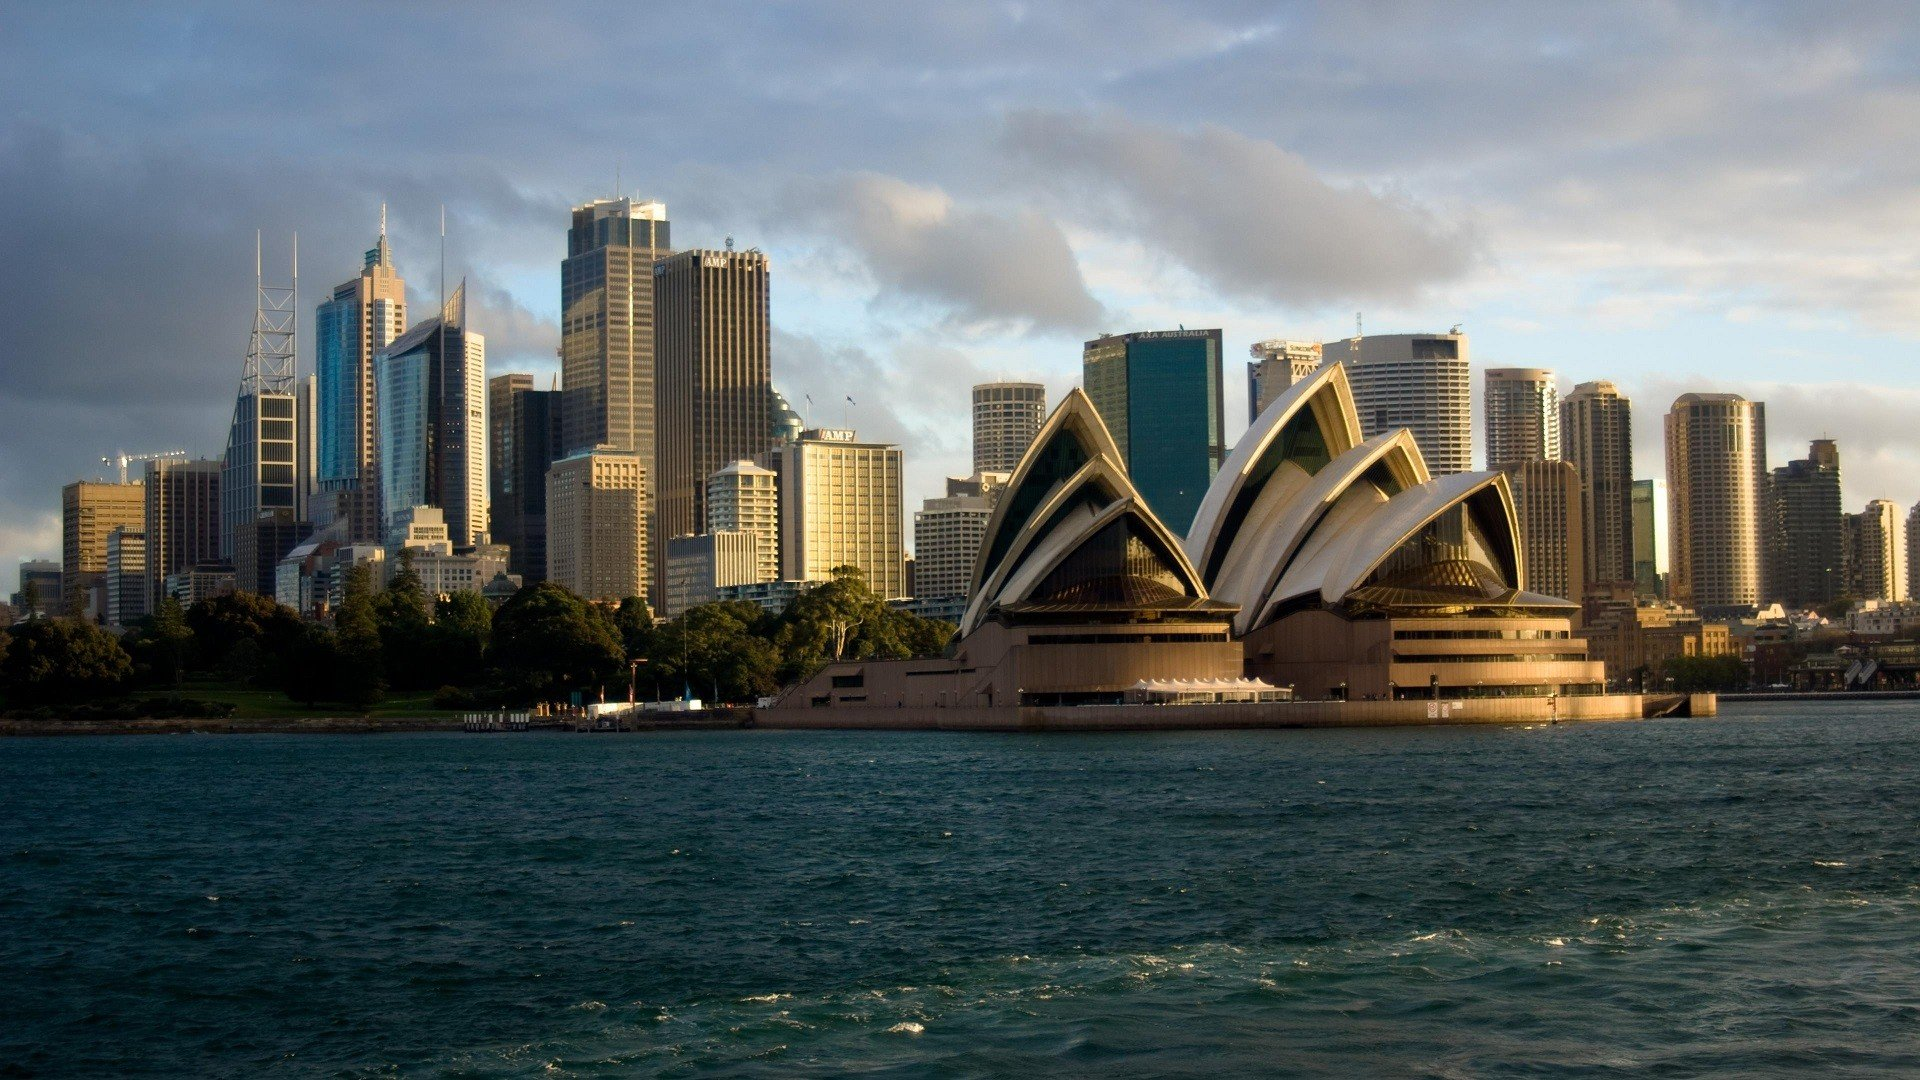 free sydney high quality wallpaper id 493395 for hd 1080p pc